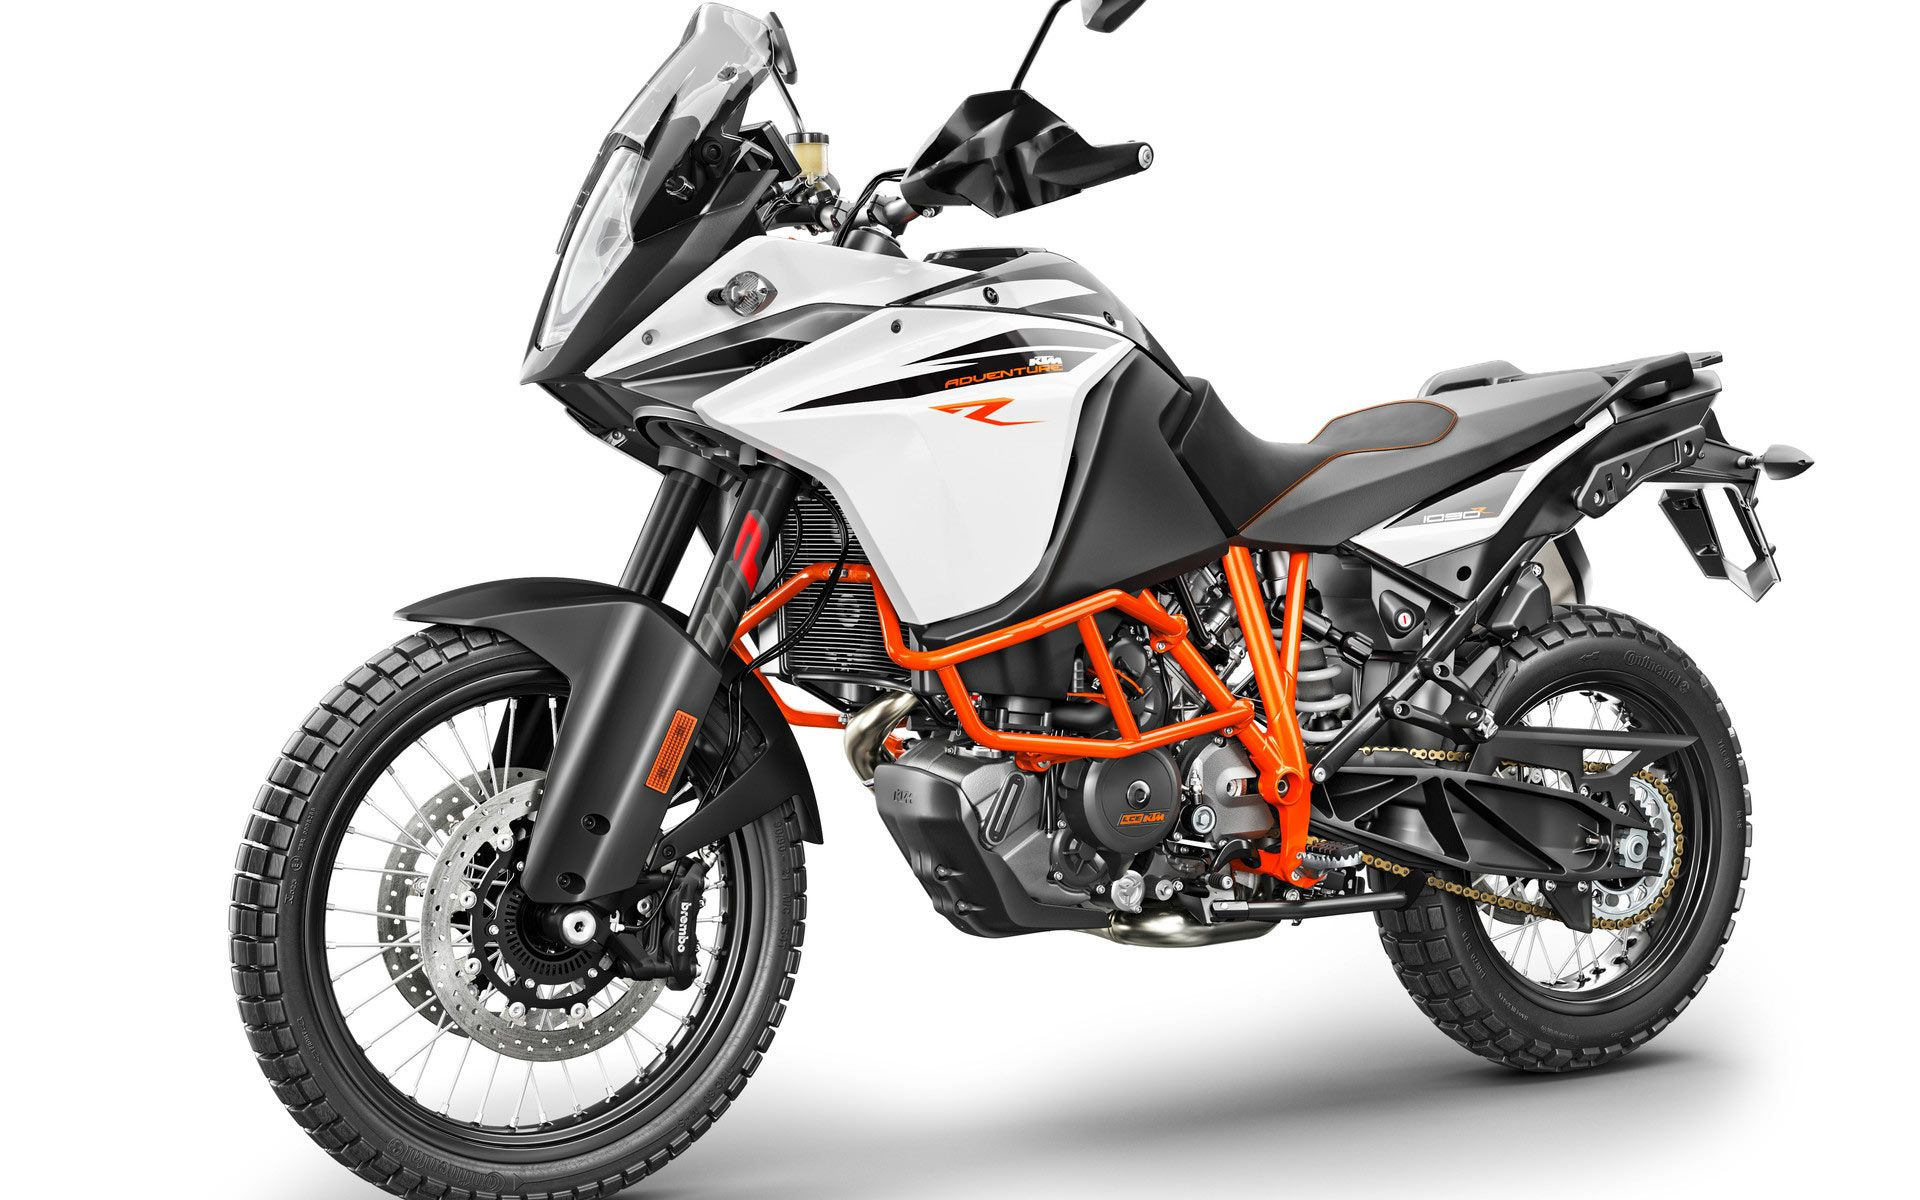 2018 Ktm 1090 Adventure Review Ktm Adventure Bike Ktm Adventure